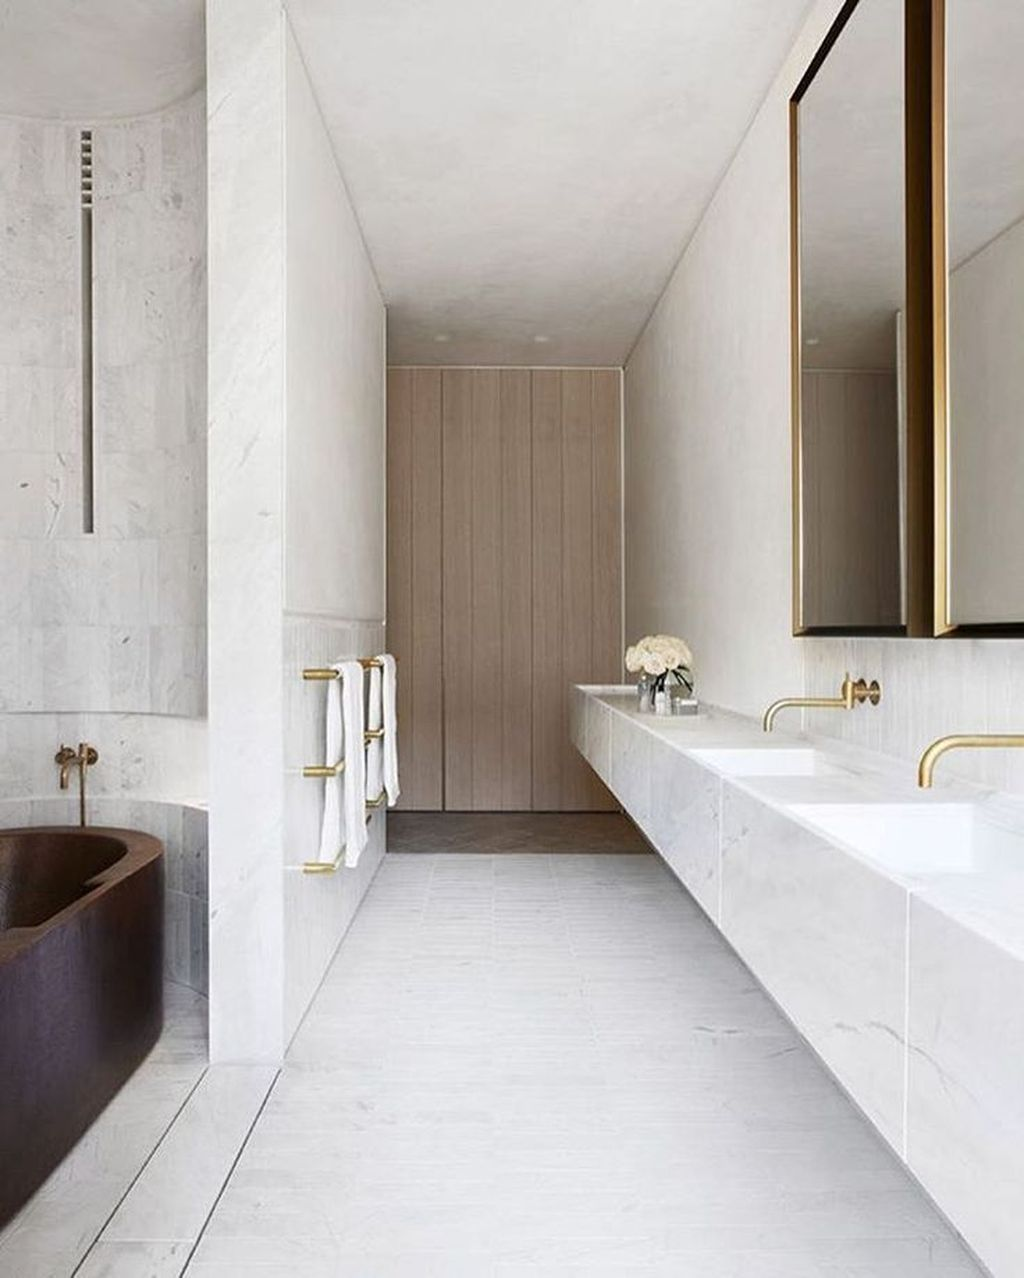 Pin by Decorating Ideas Home on Decorating bathrooms | Pinterest ...